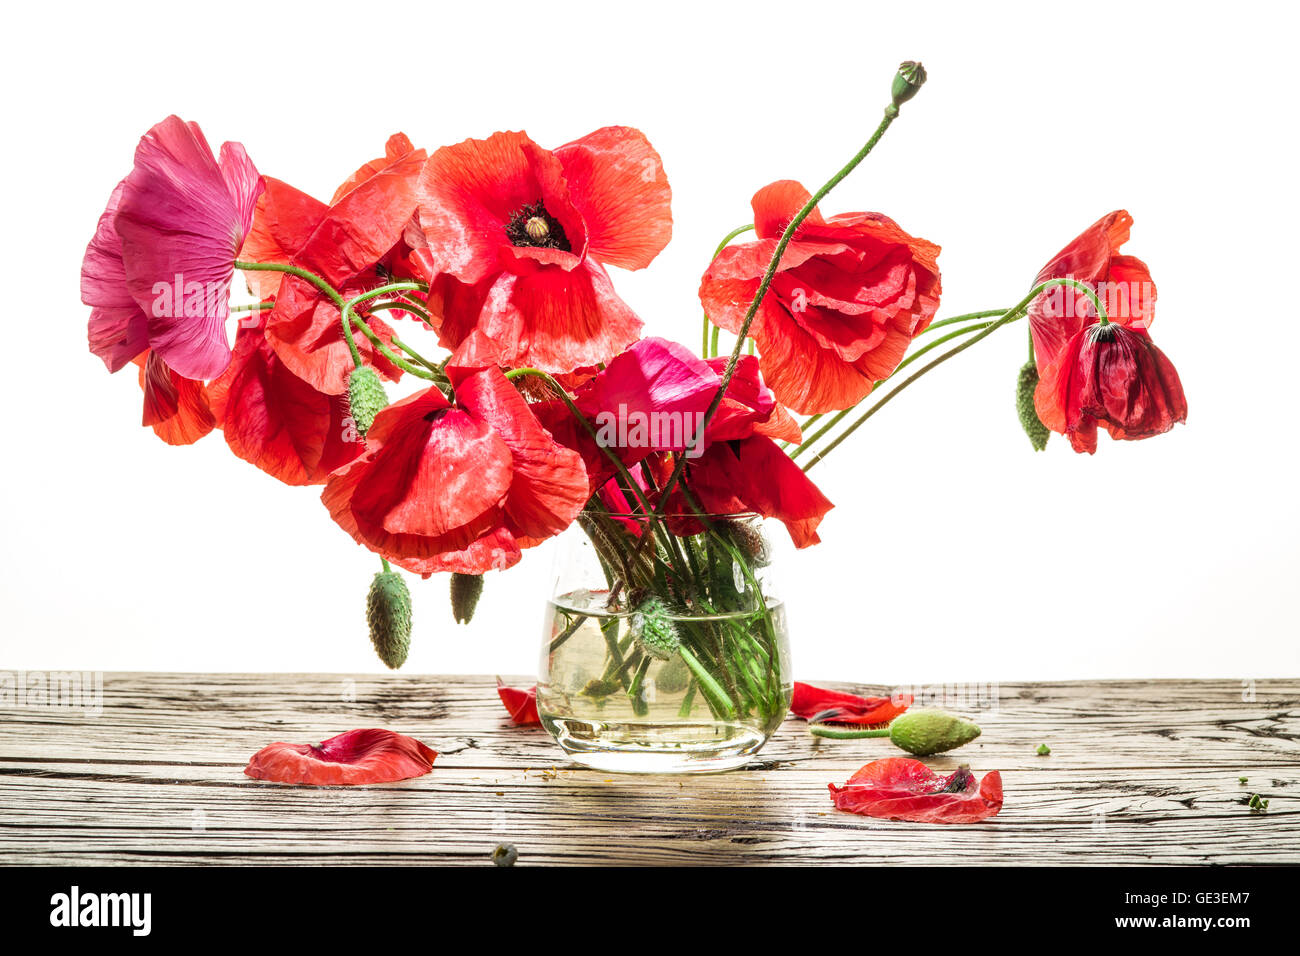 Poppy Vase Stock Photos Poppy Vase Stock Images Alamy